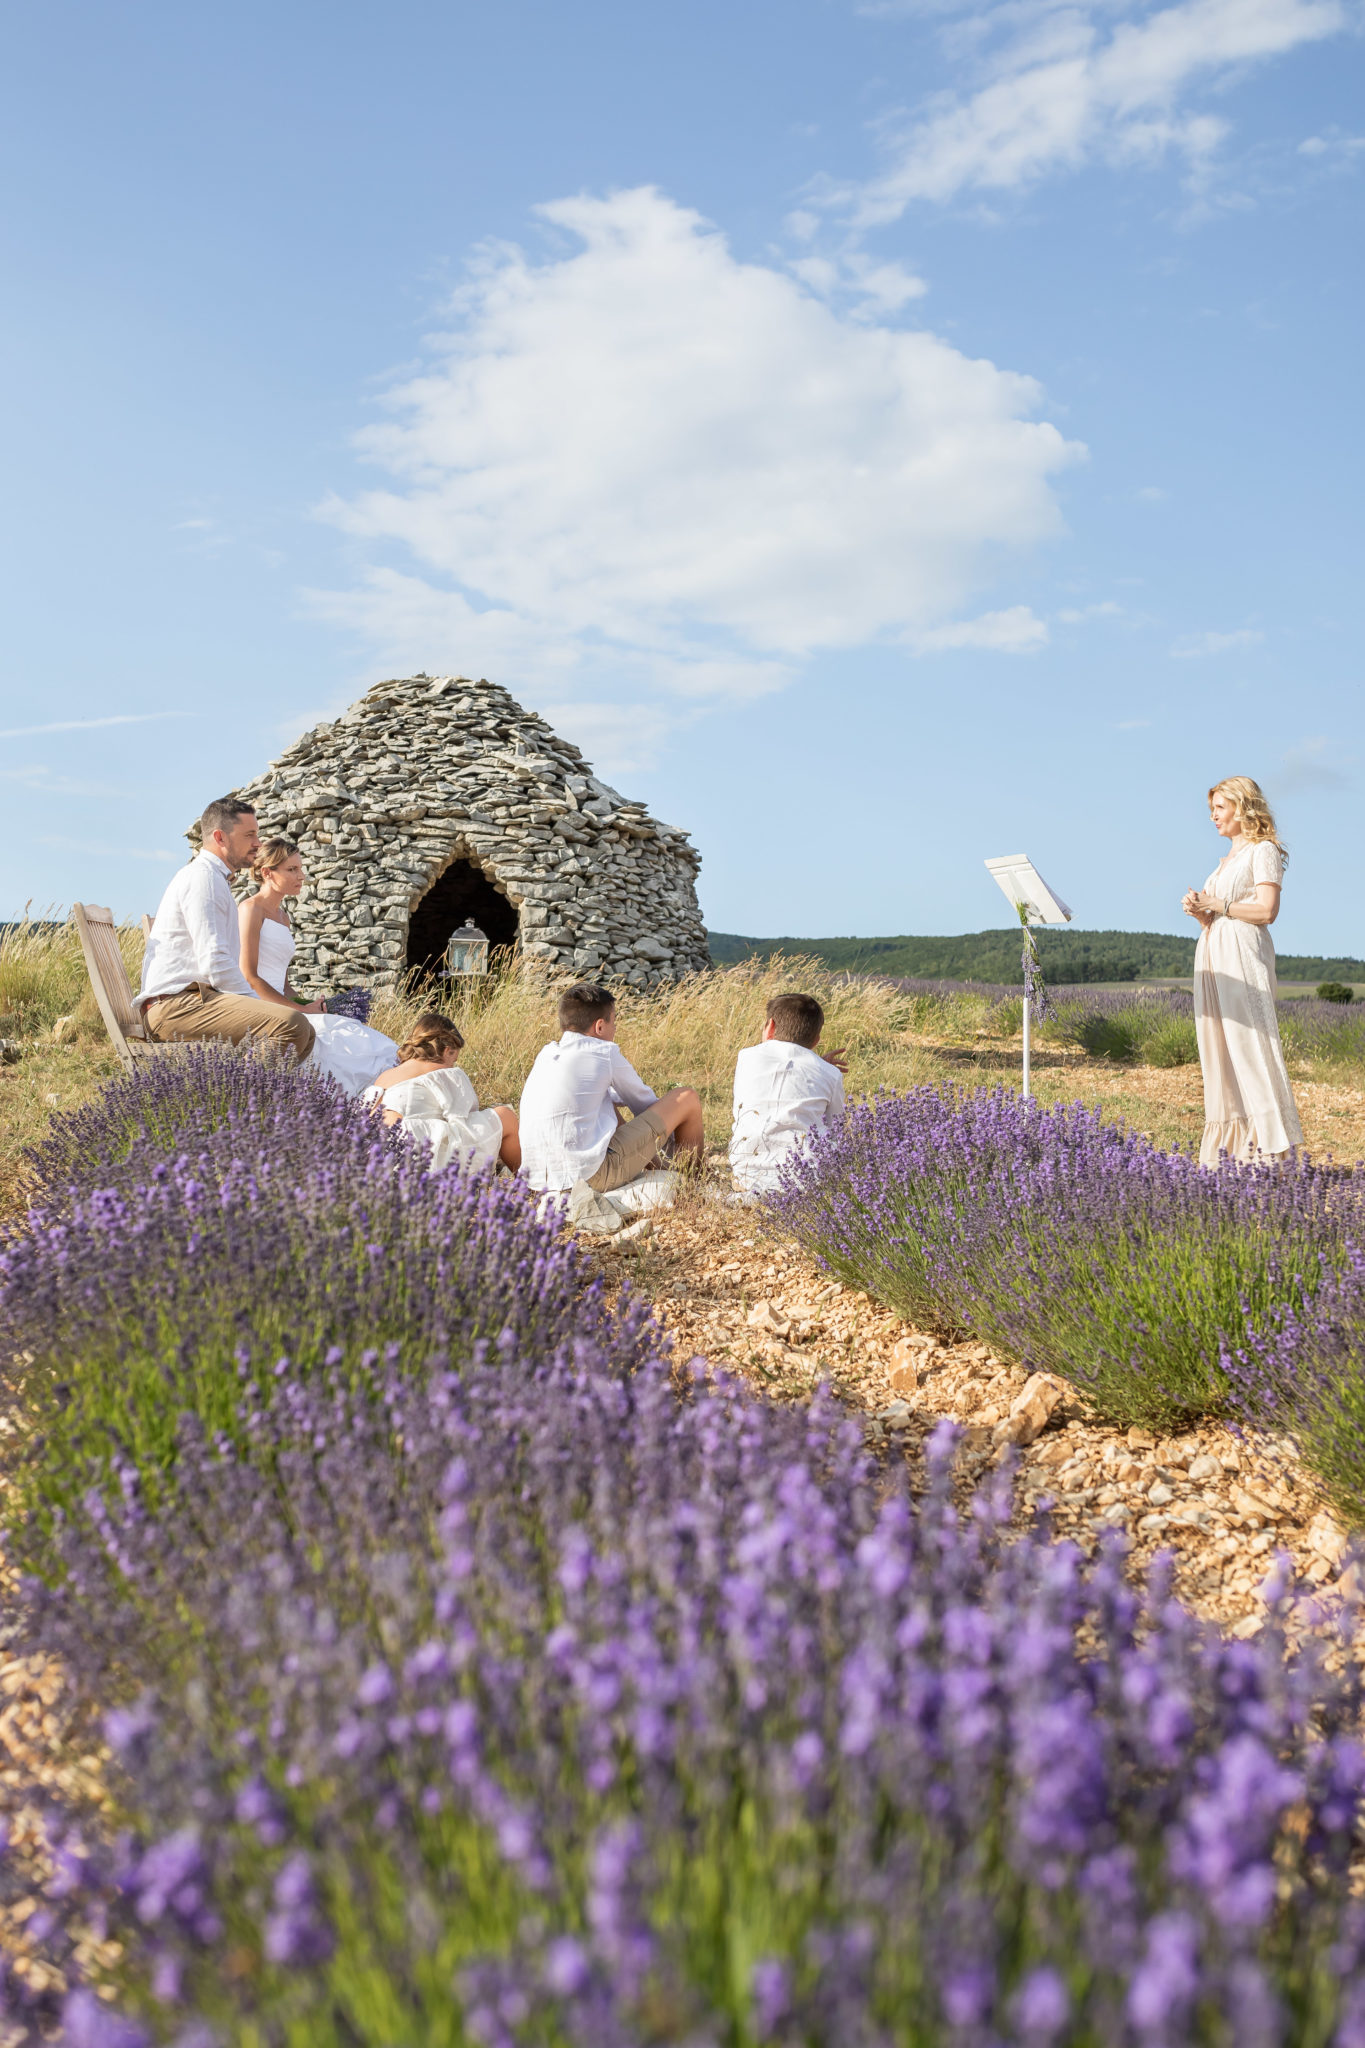 elopement-in-Provence-lavander-intimate-wedding-ceremony-Marie-Calfopoulos-Photography-04